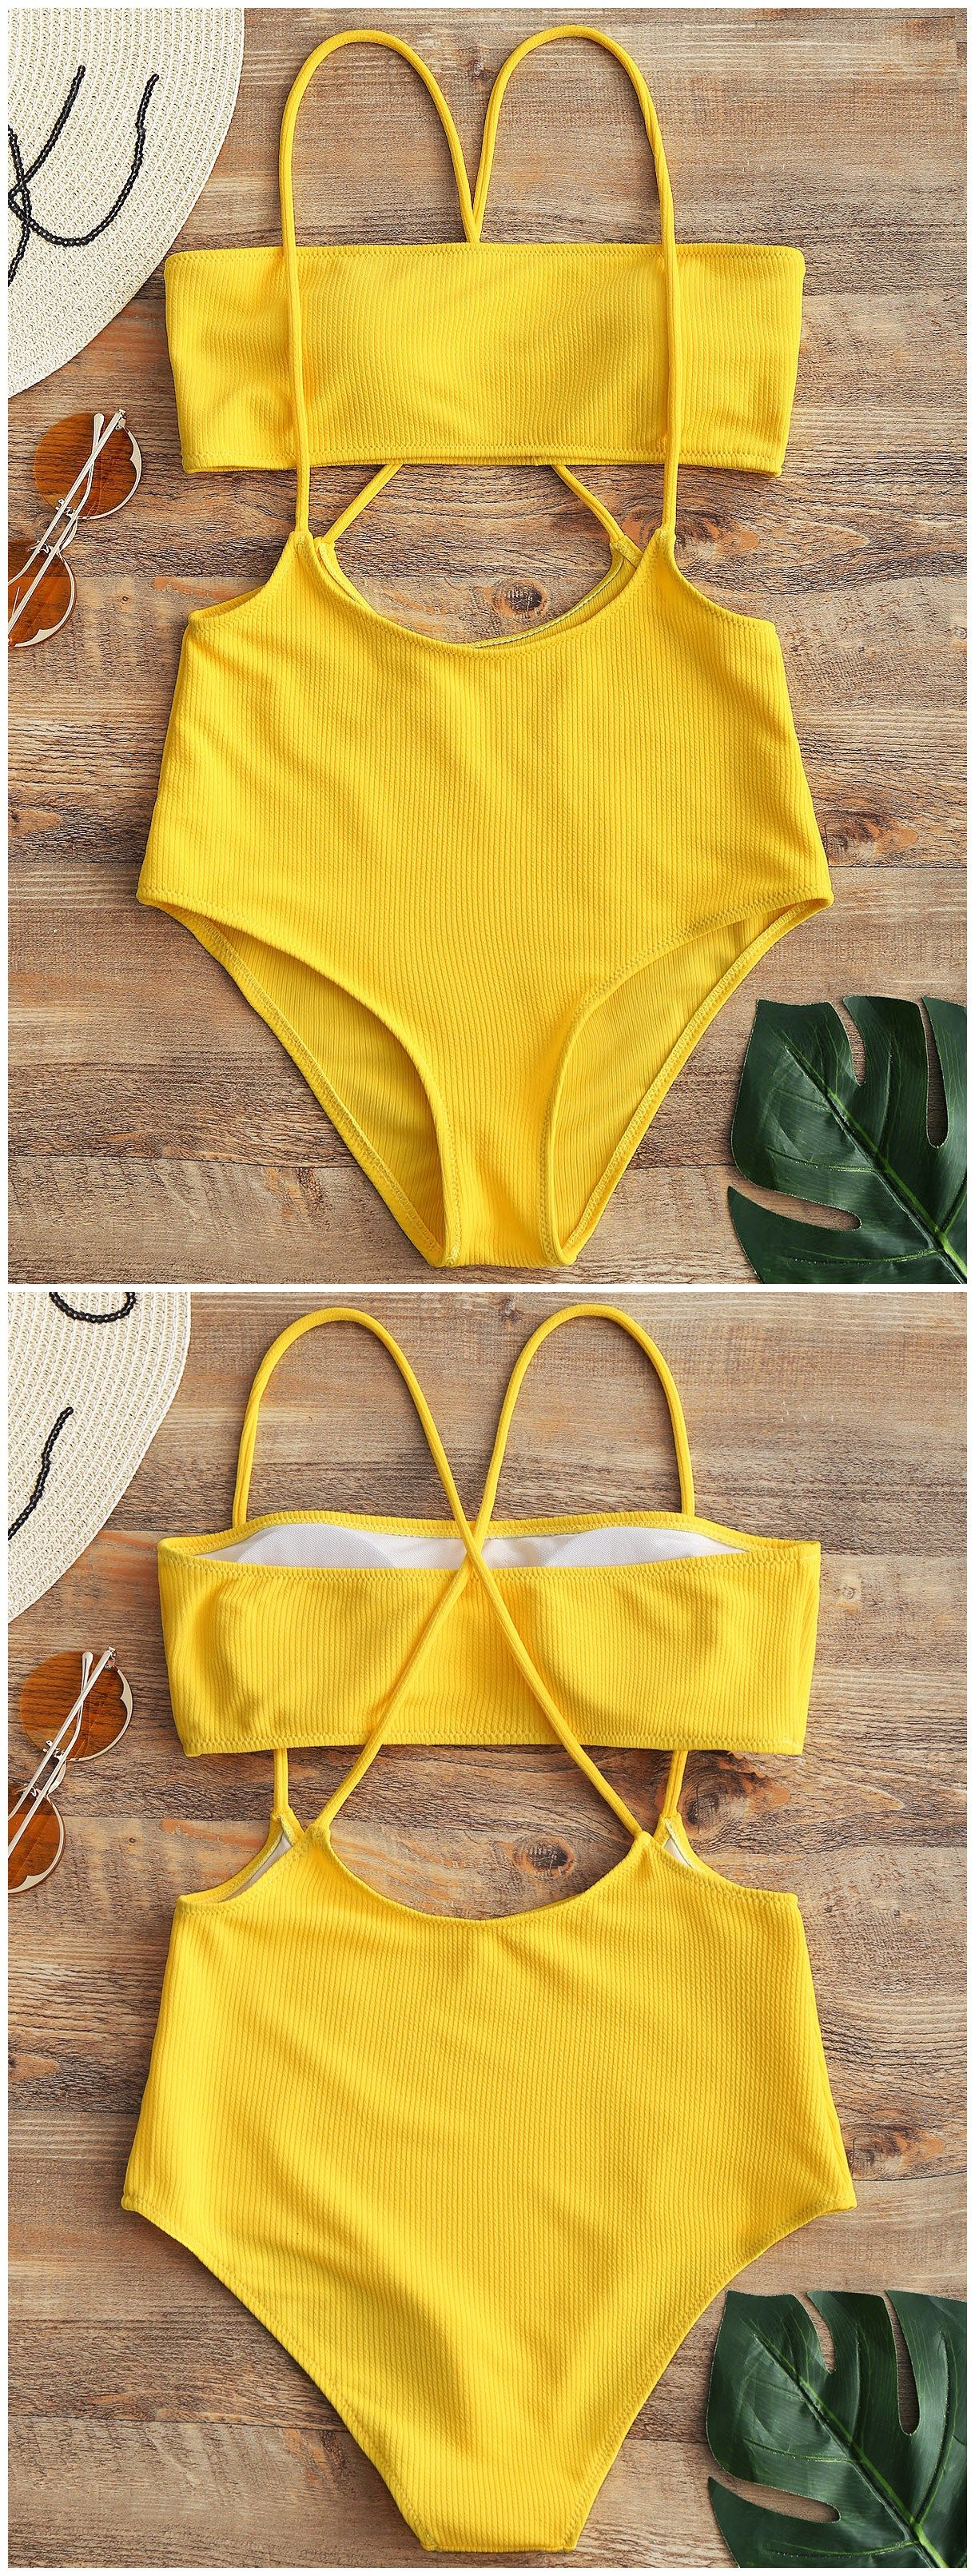 ca0a25a61f202 Bandeau Top And High Waisted Slip Bikini Bottoms. #Zaful #Swimwear #Bikinis  zaful,zaful outfits,zaful dresses,spring outfits,summer dresses,Valentine's  Day ...